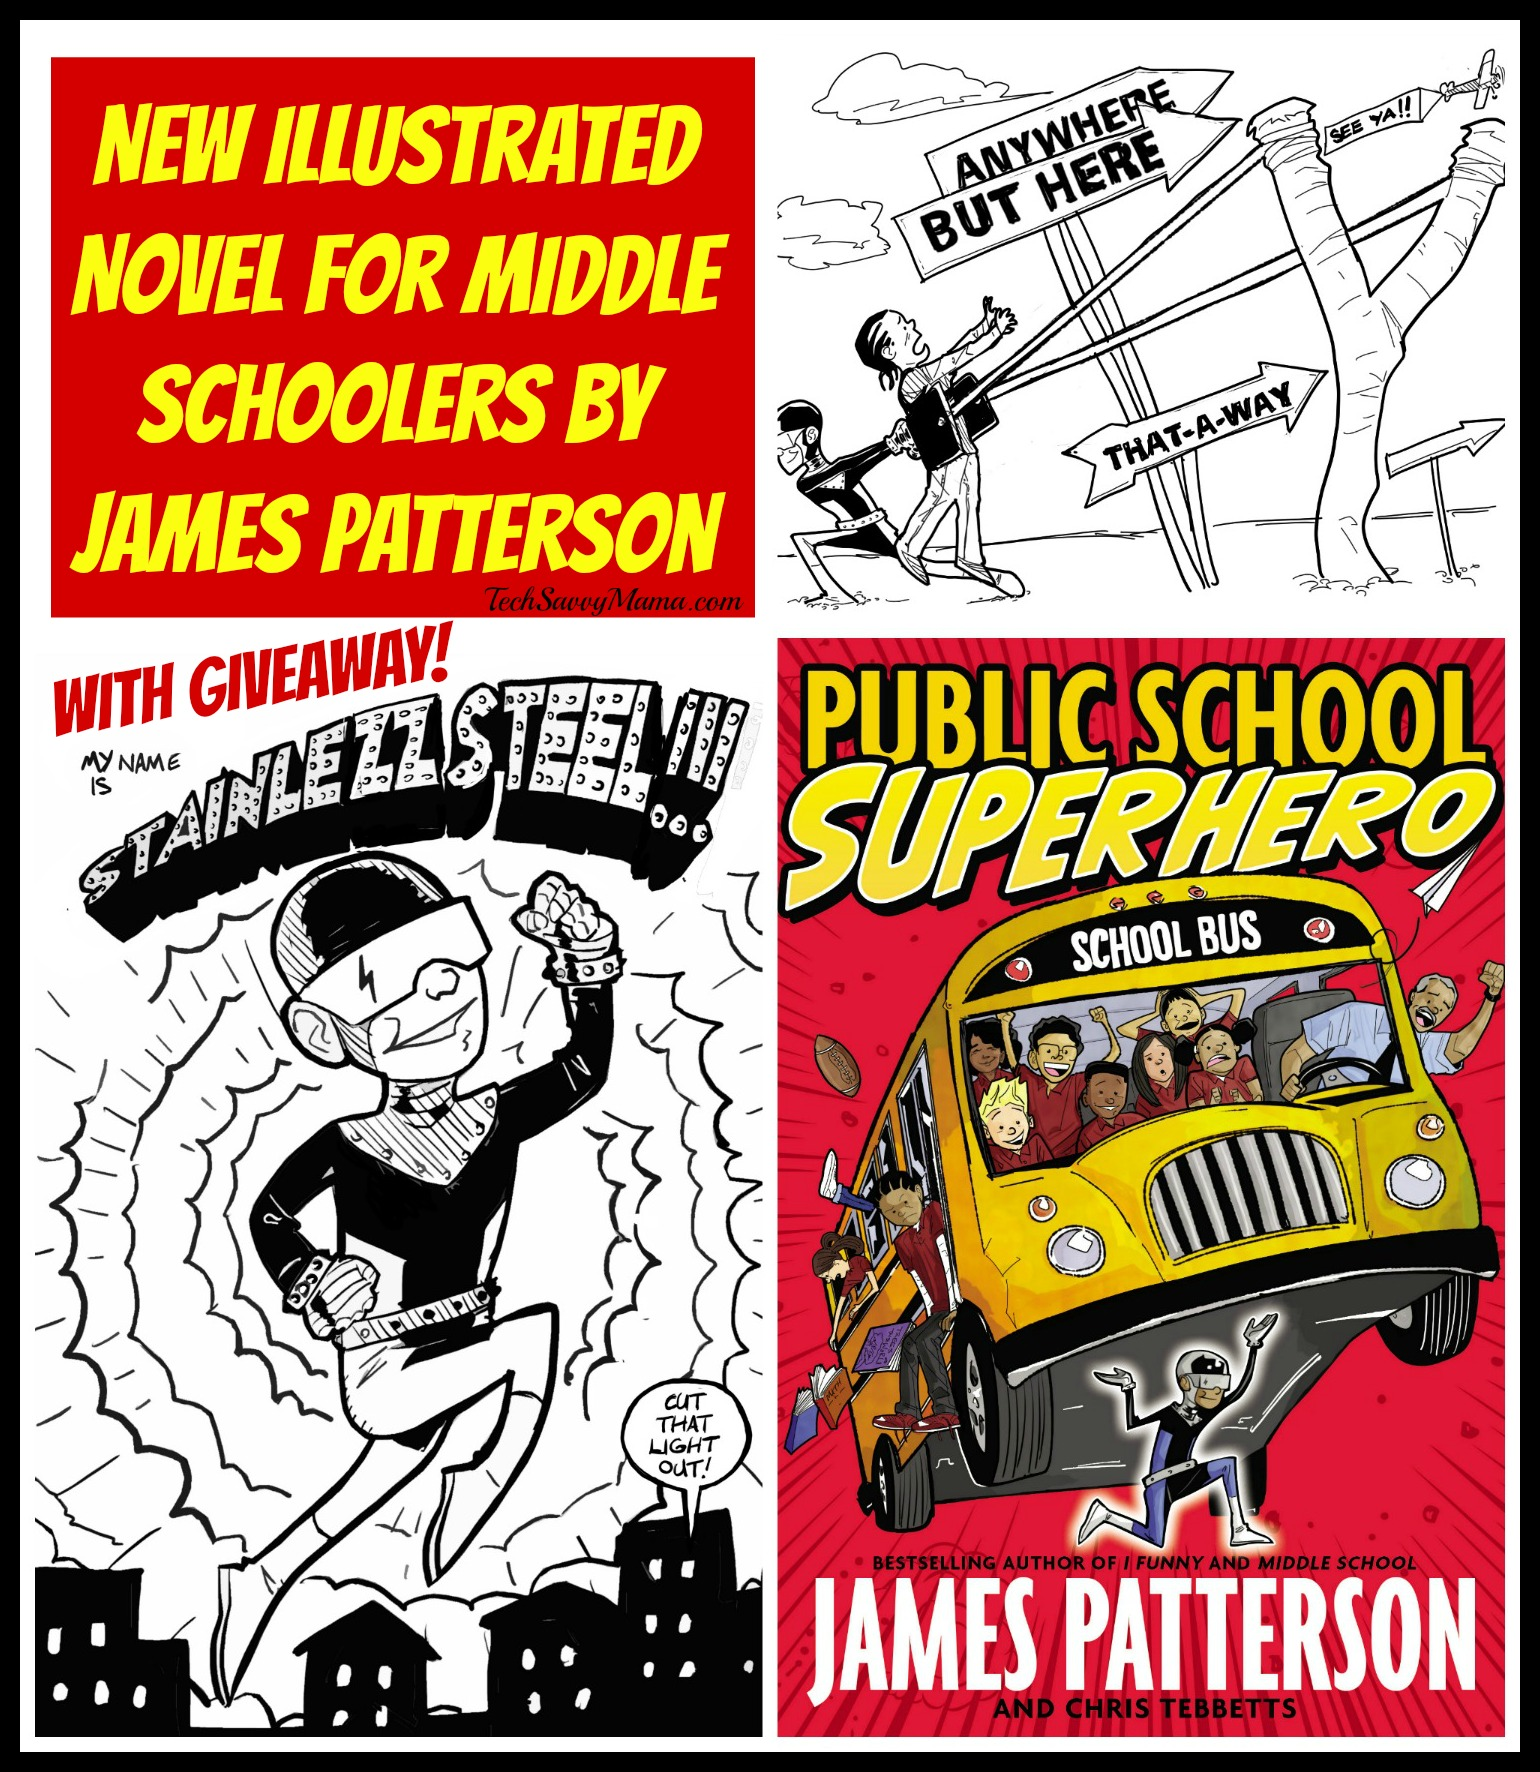 Public School Superhero: New Illustrated Novel for Middle Schoolers by James Patterson (w. giveaway)